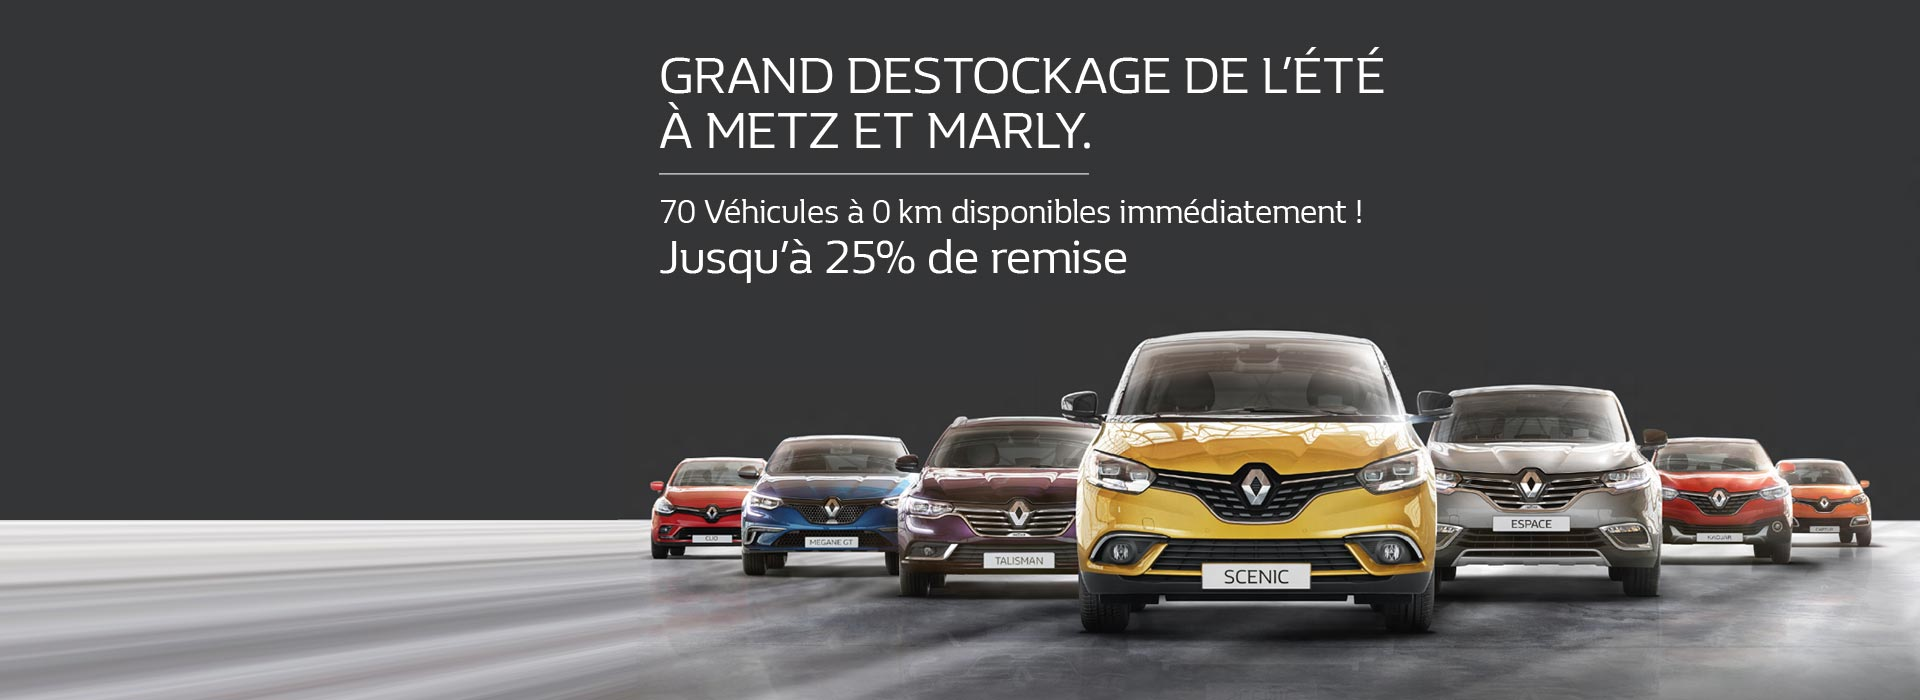 renault metz concessionnaire garage moselle 57. Black Bedroom Furniture Sets. Home Design Ideas